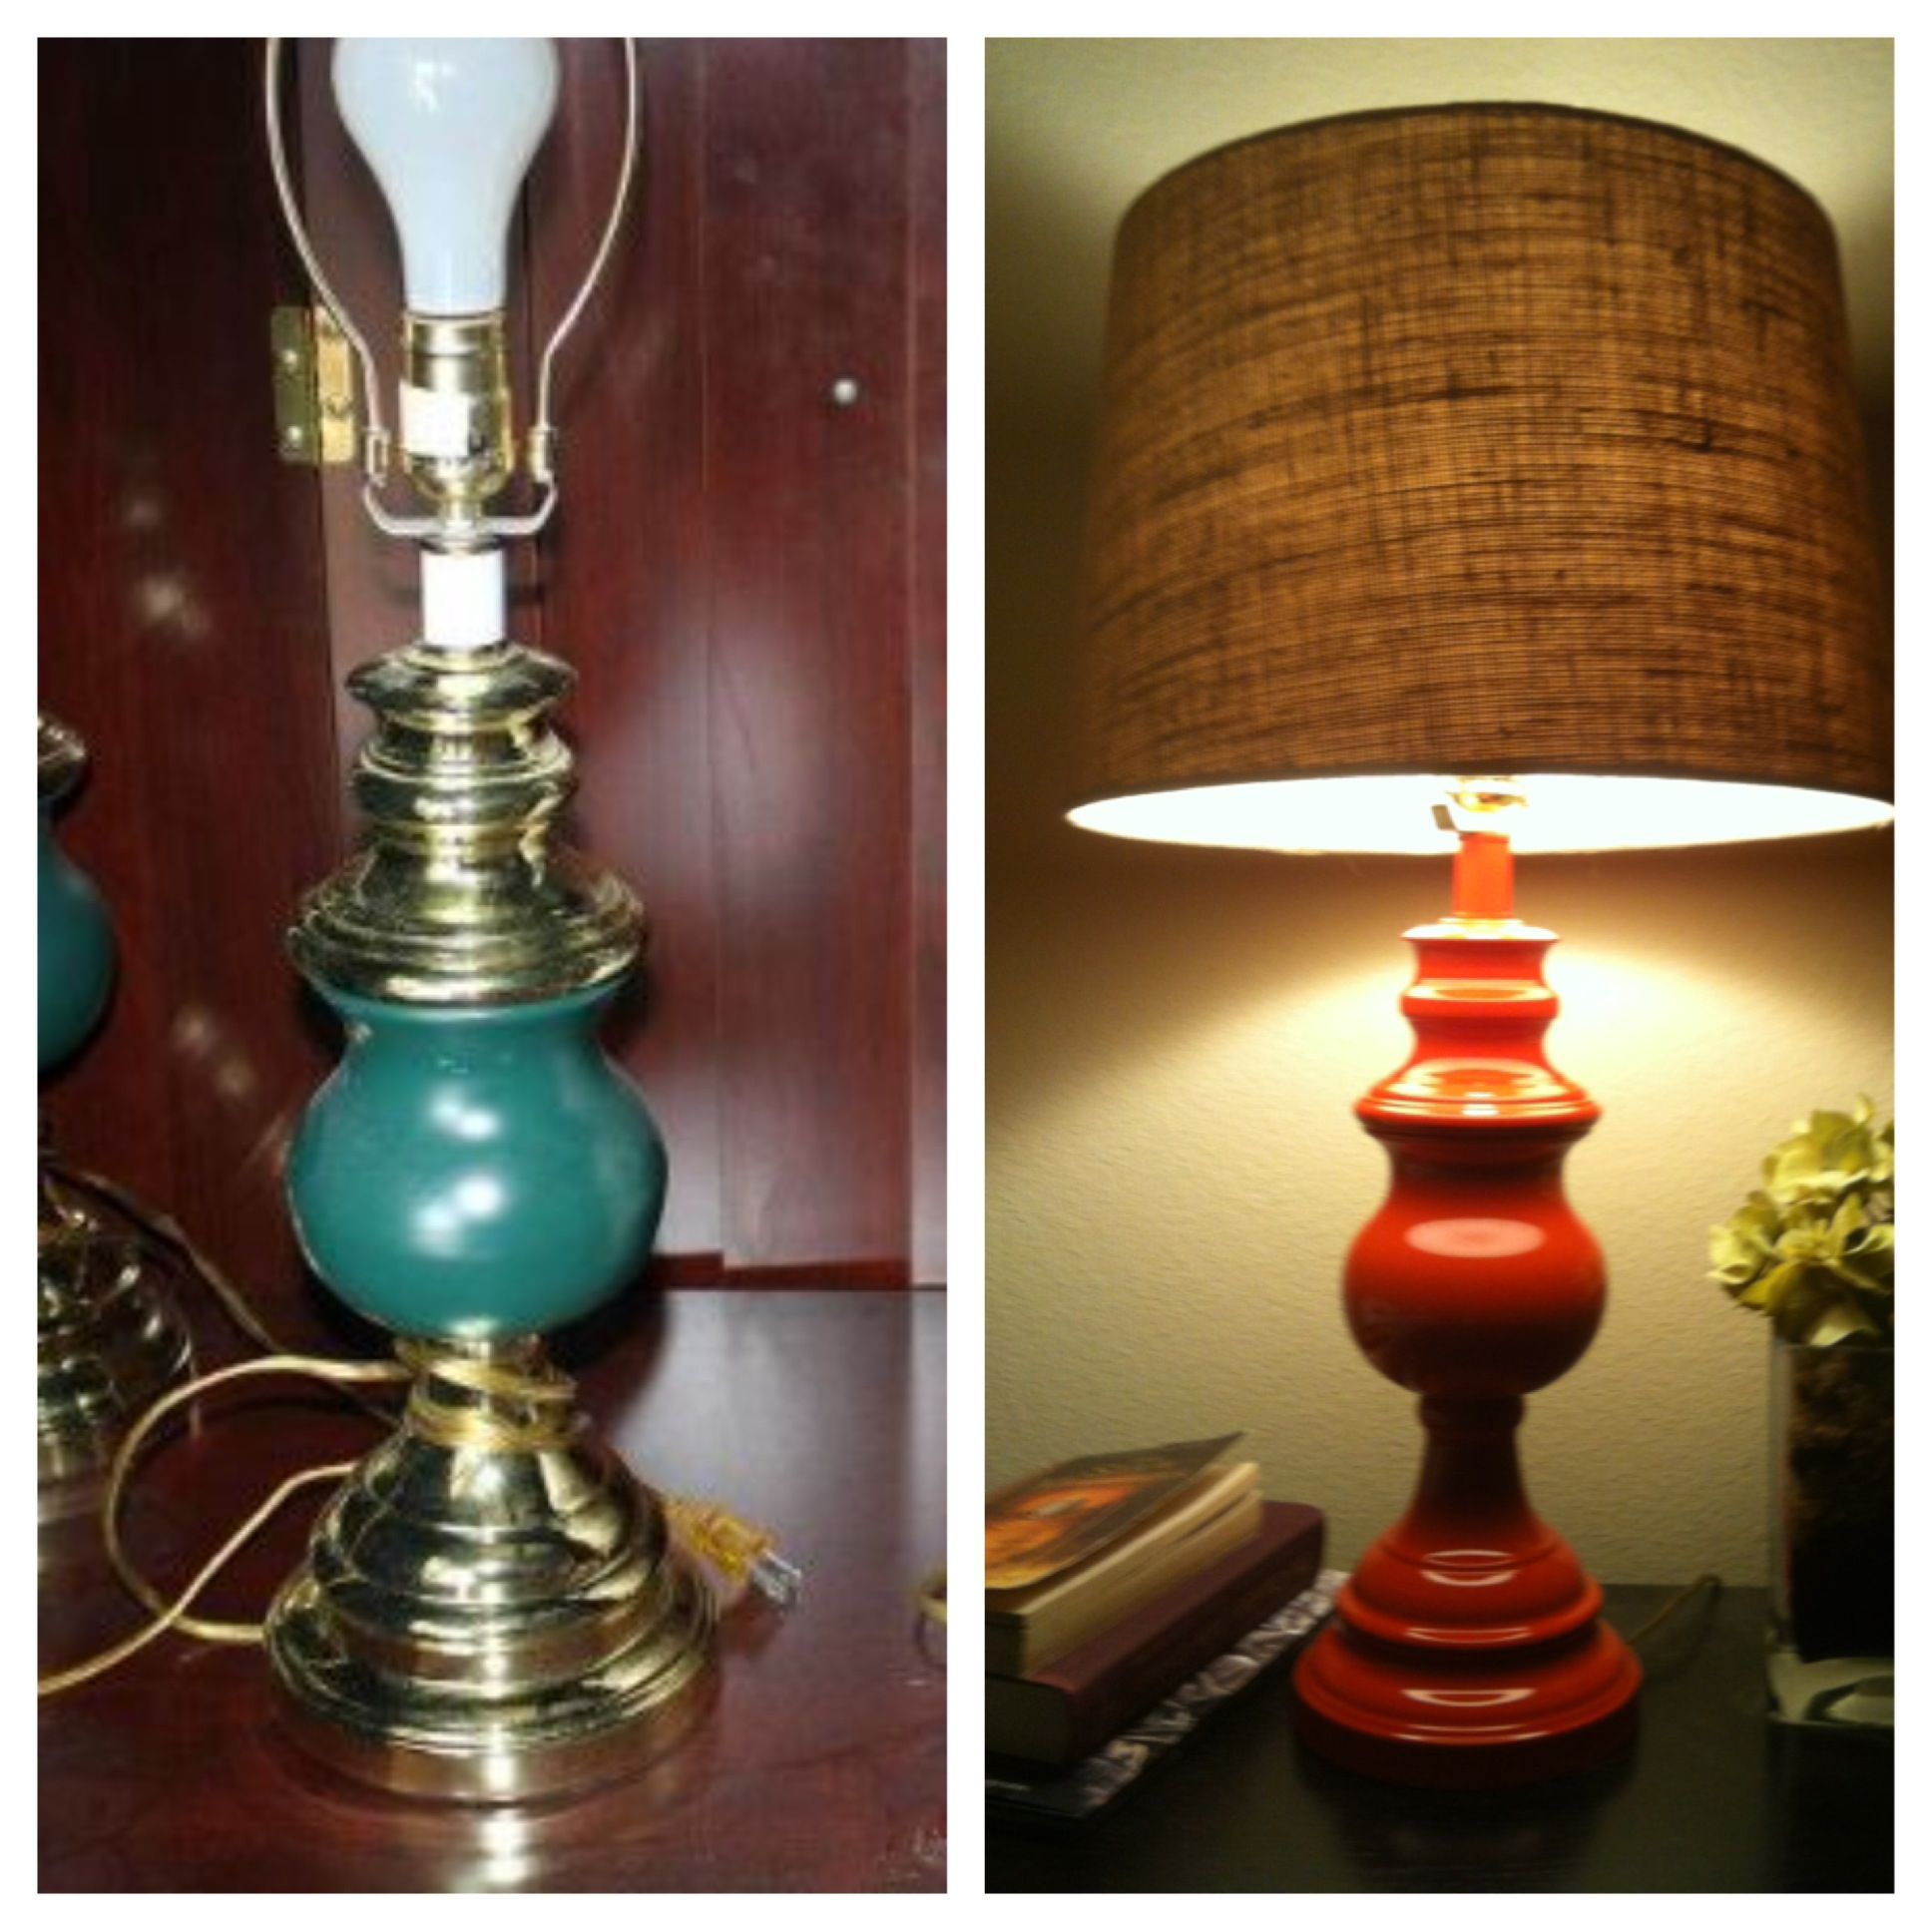 Painted Old Lamp Before After Home Decor Diy Decor Old Lamps